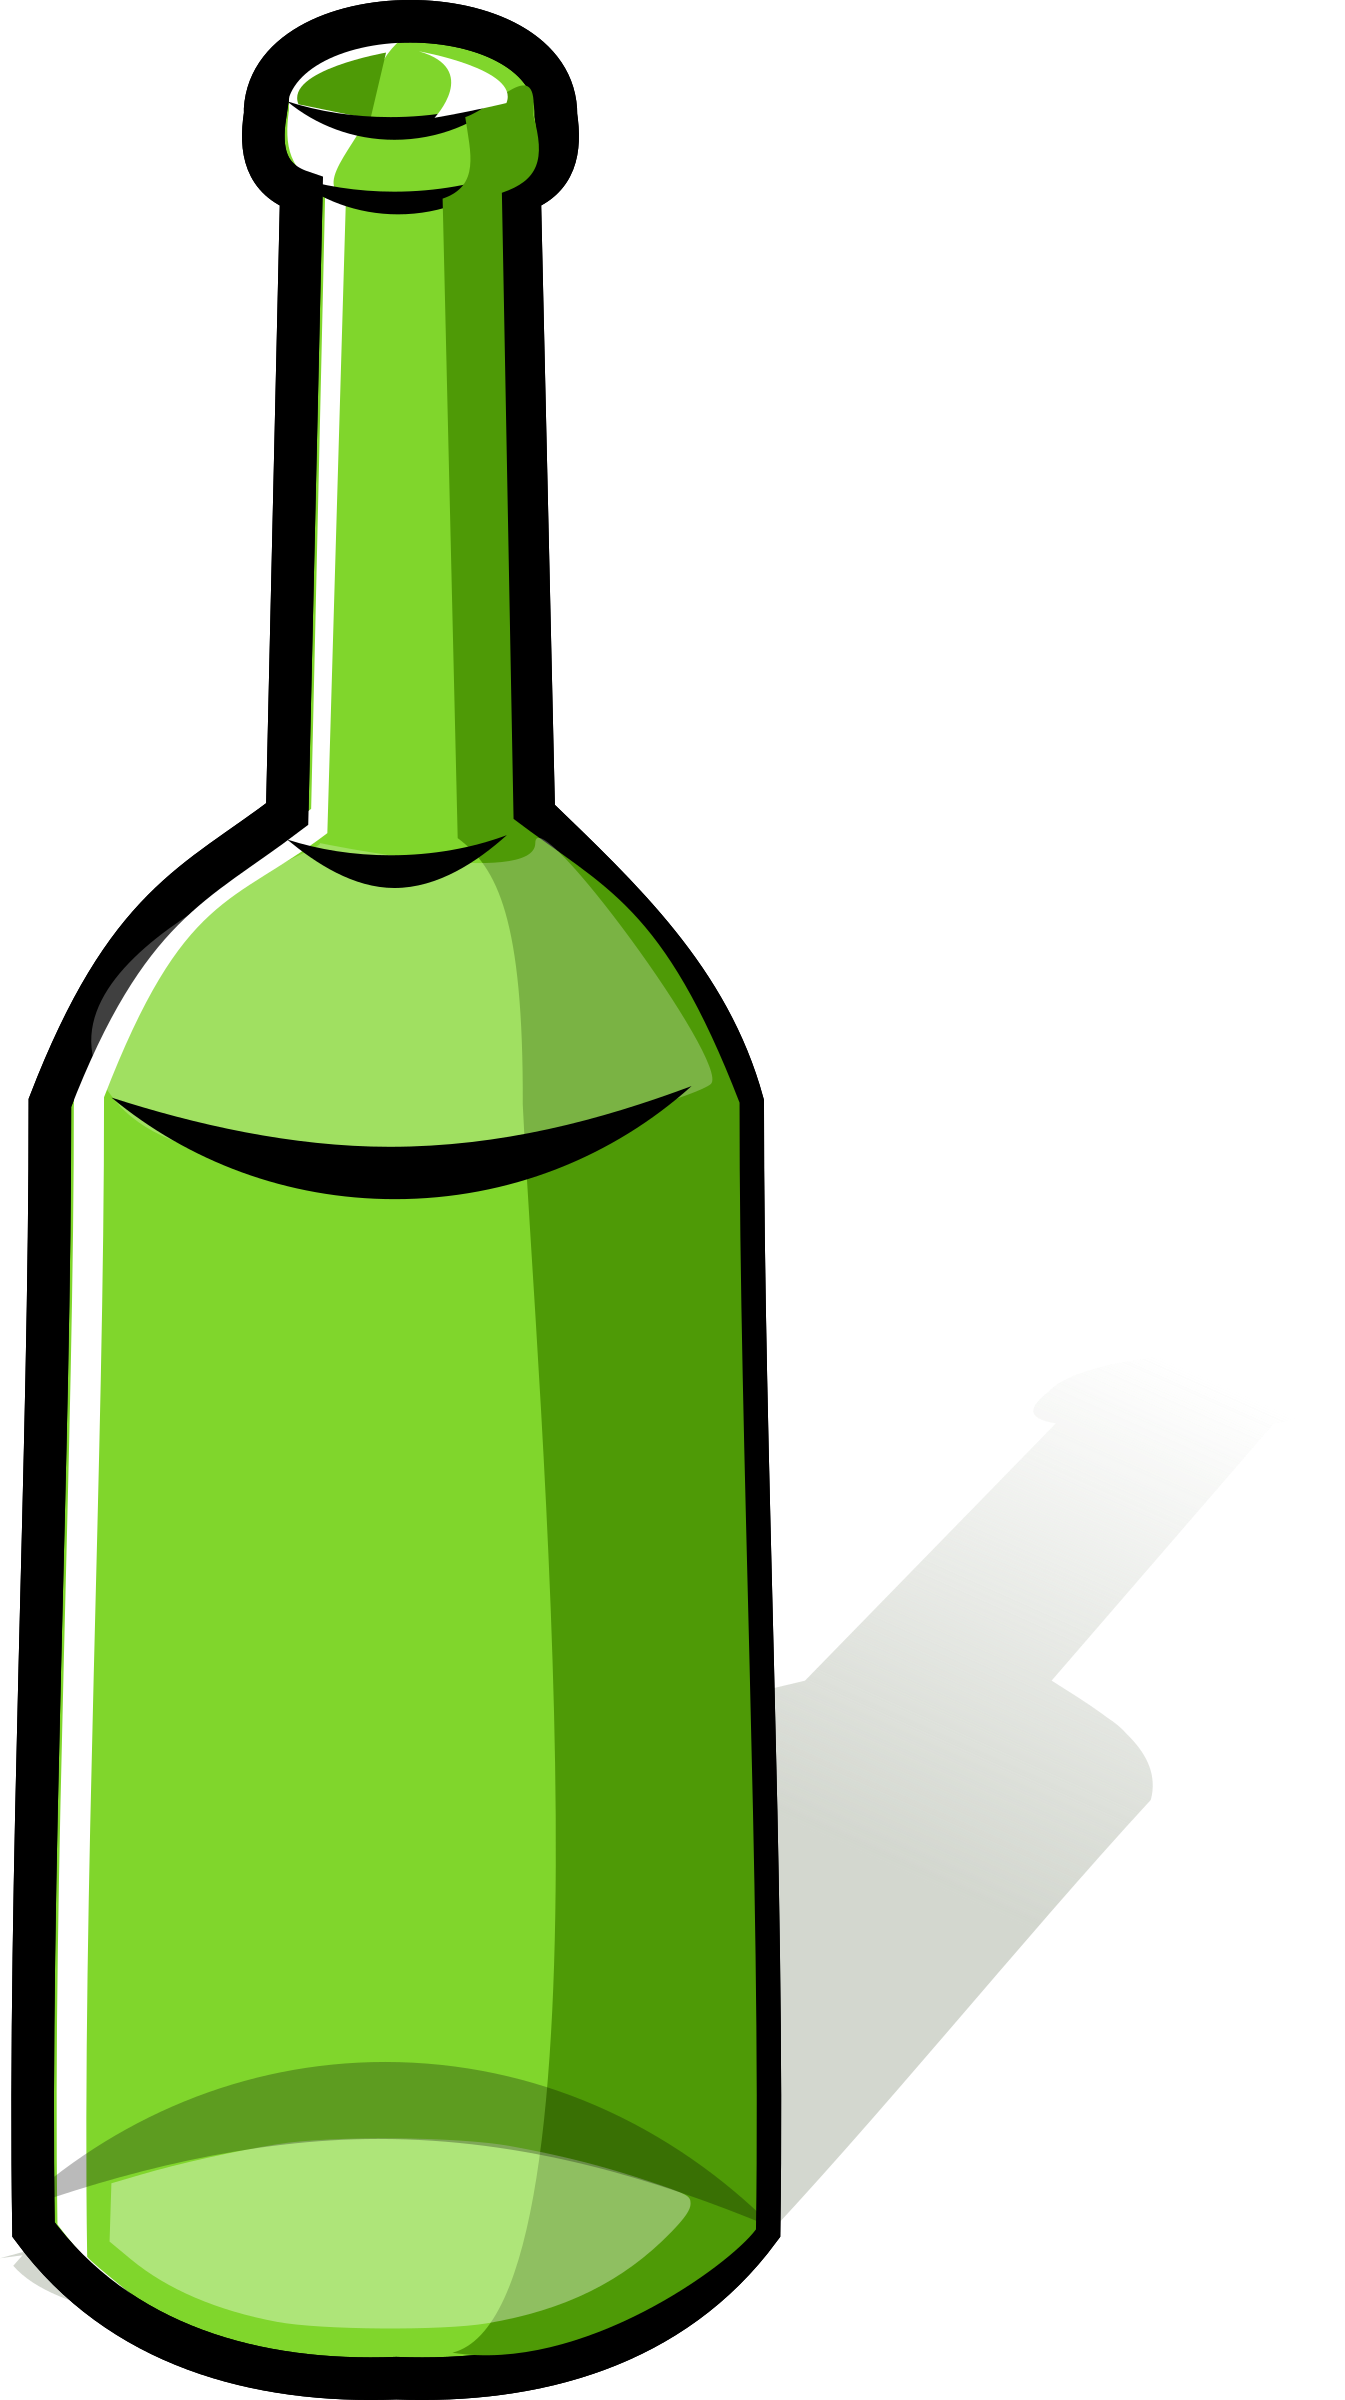 Alcohol bottle clipart png. Green big image